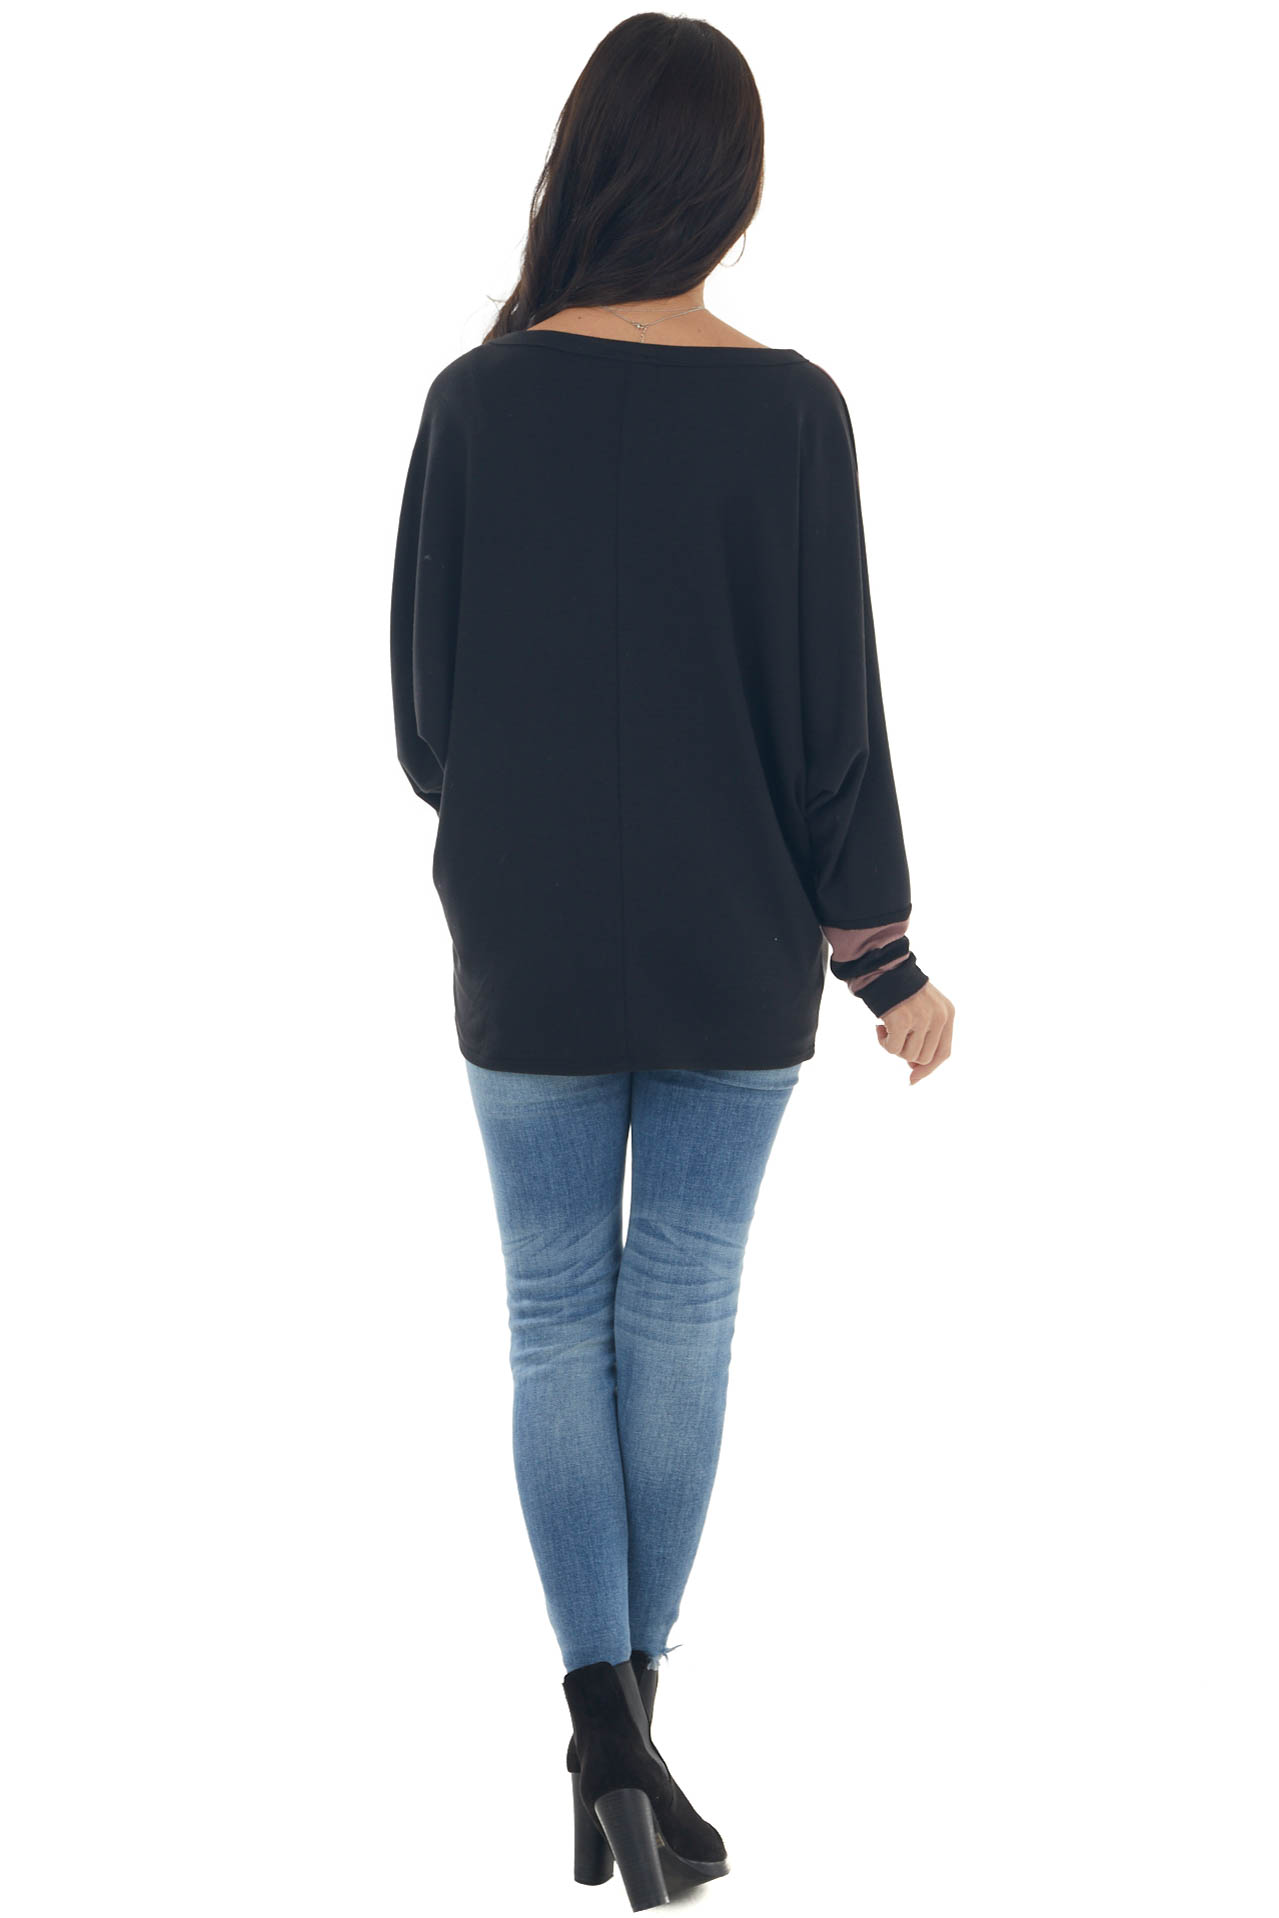 Mauve Stripe Colorblock Top with Dolman Sleeves